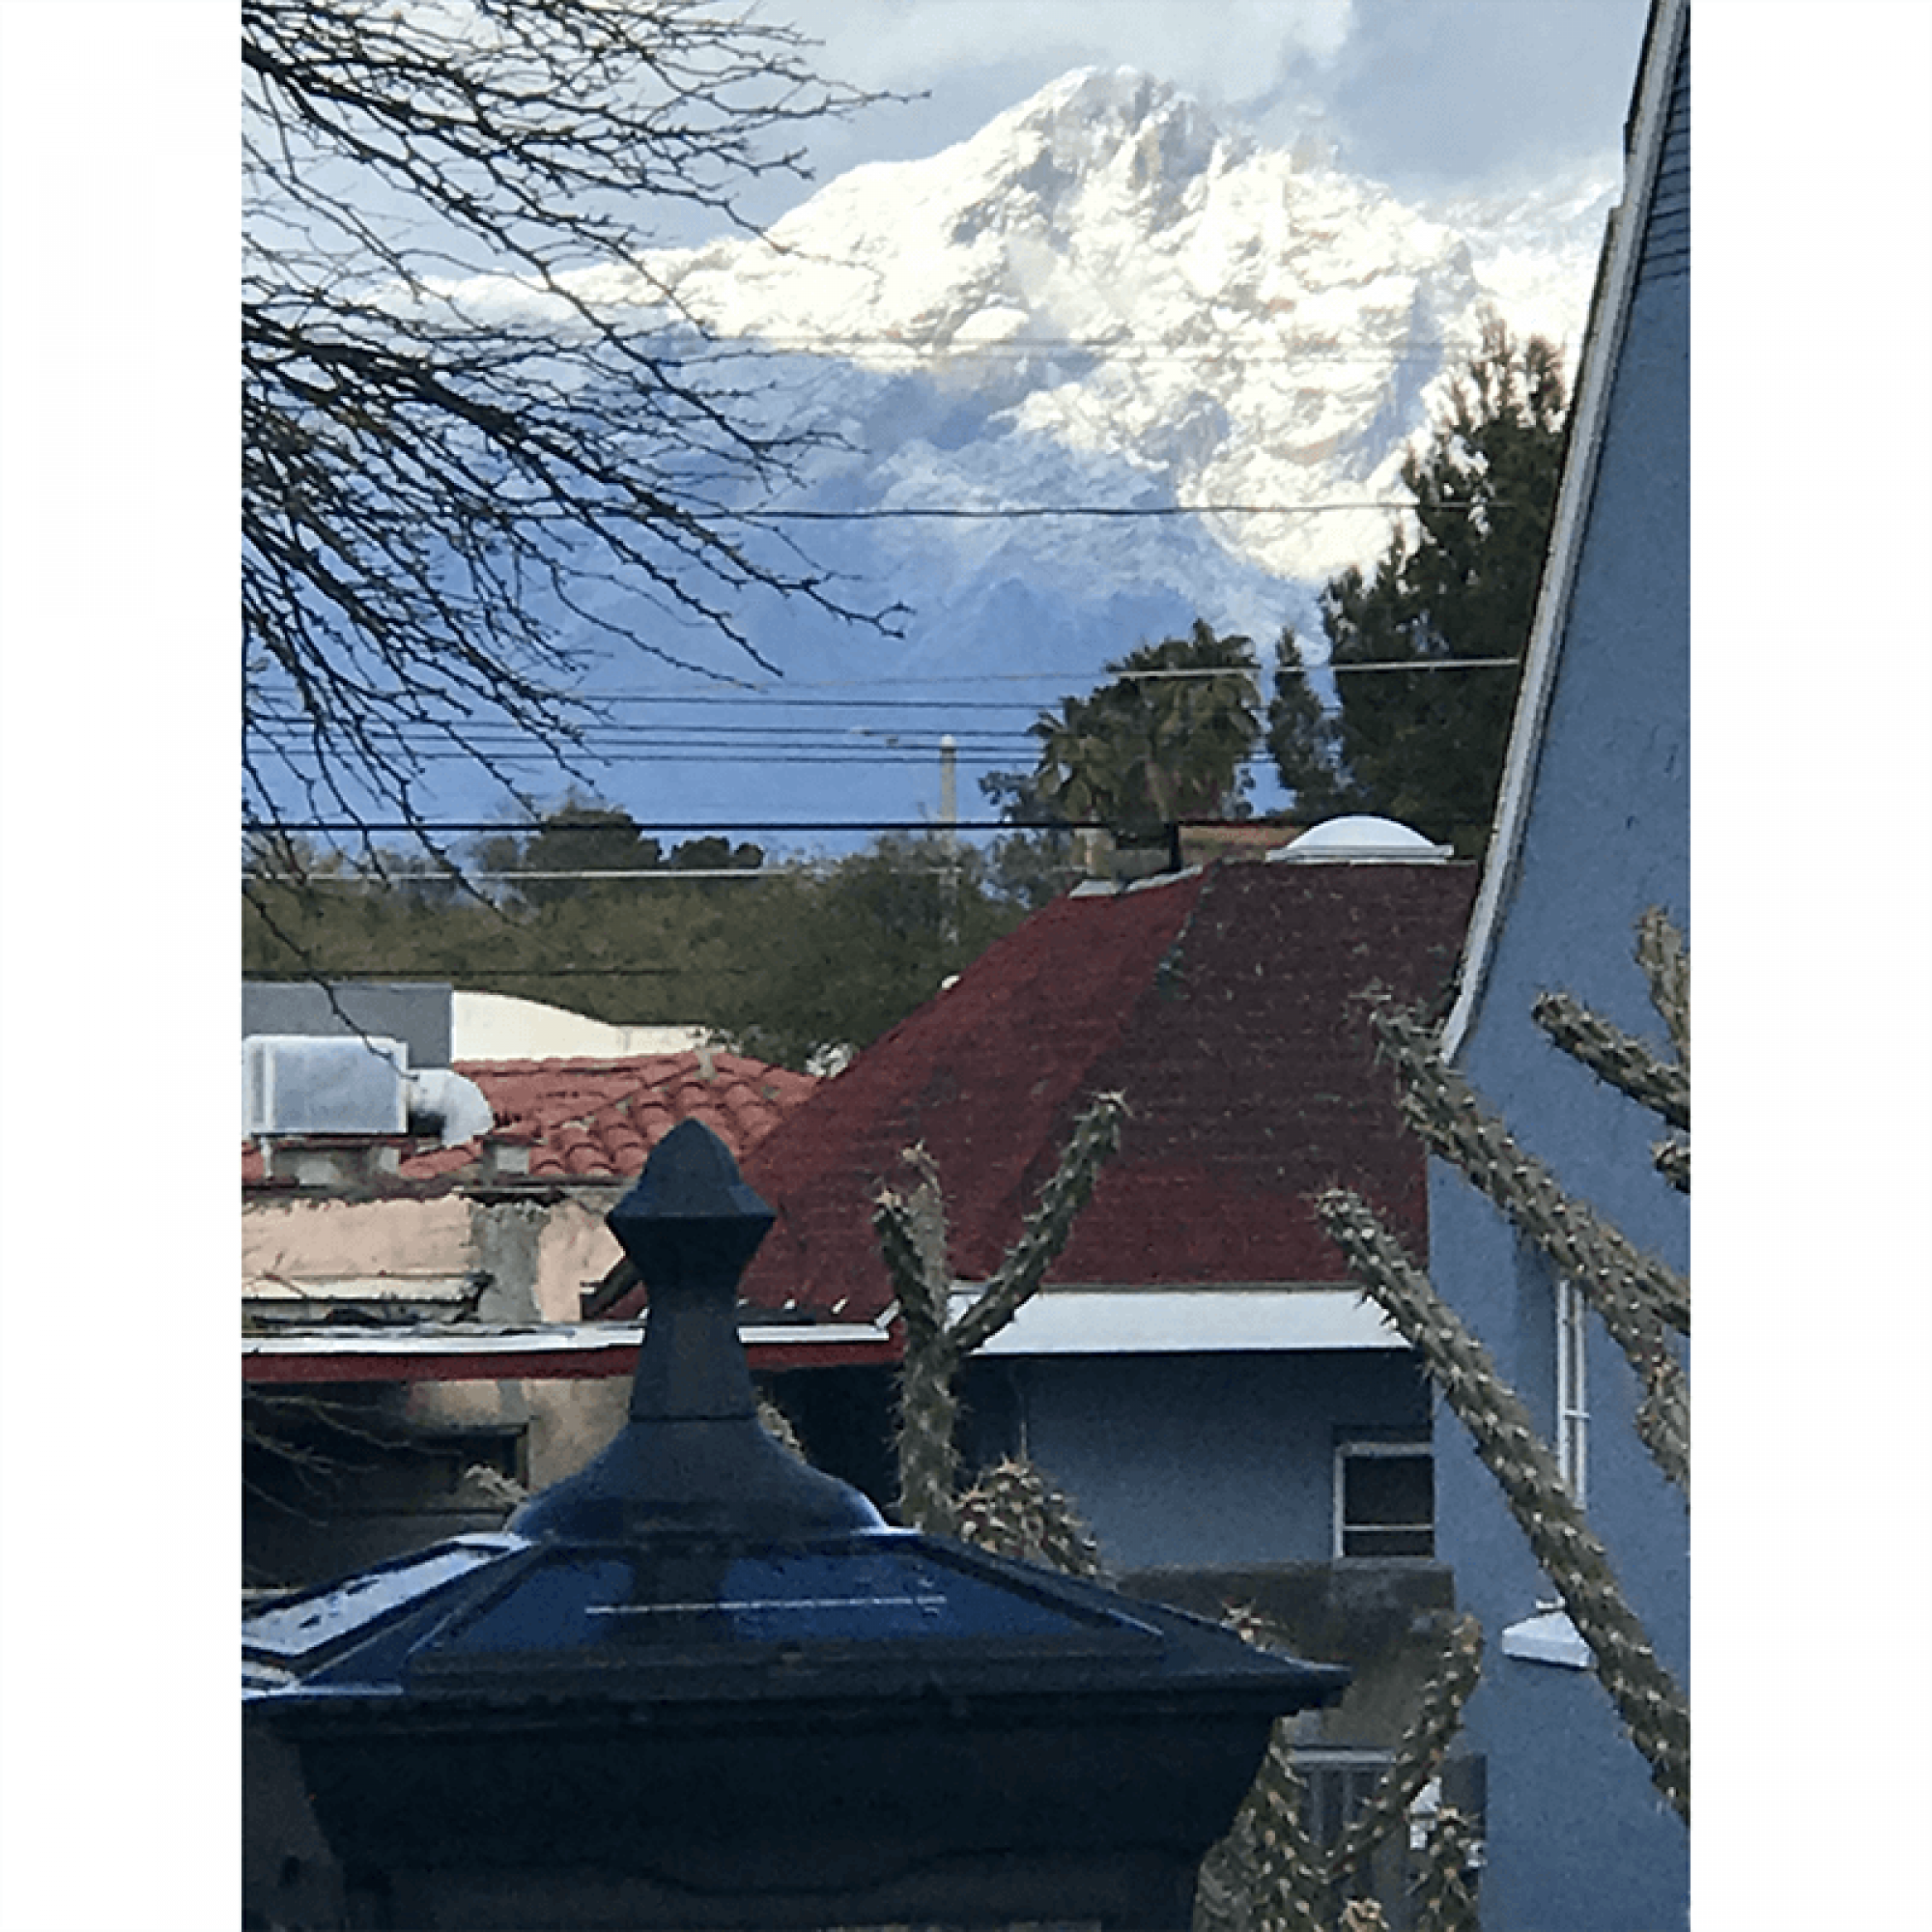 snowy mountains behind rooftops